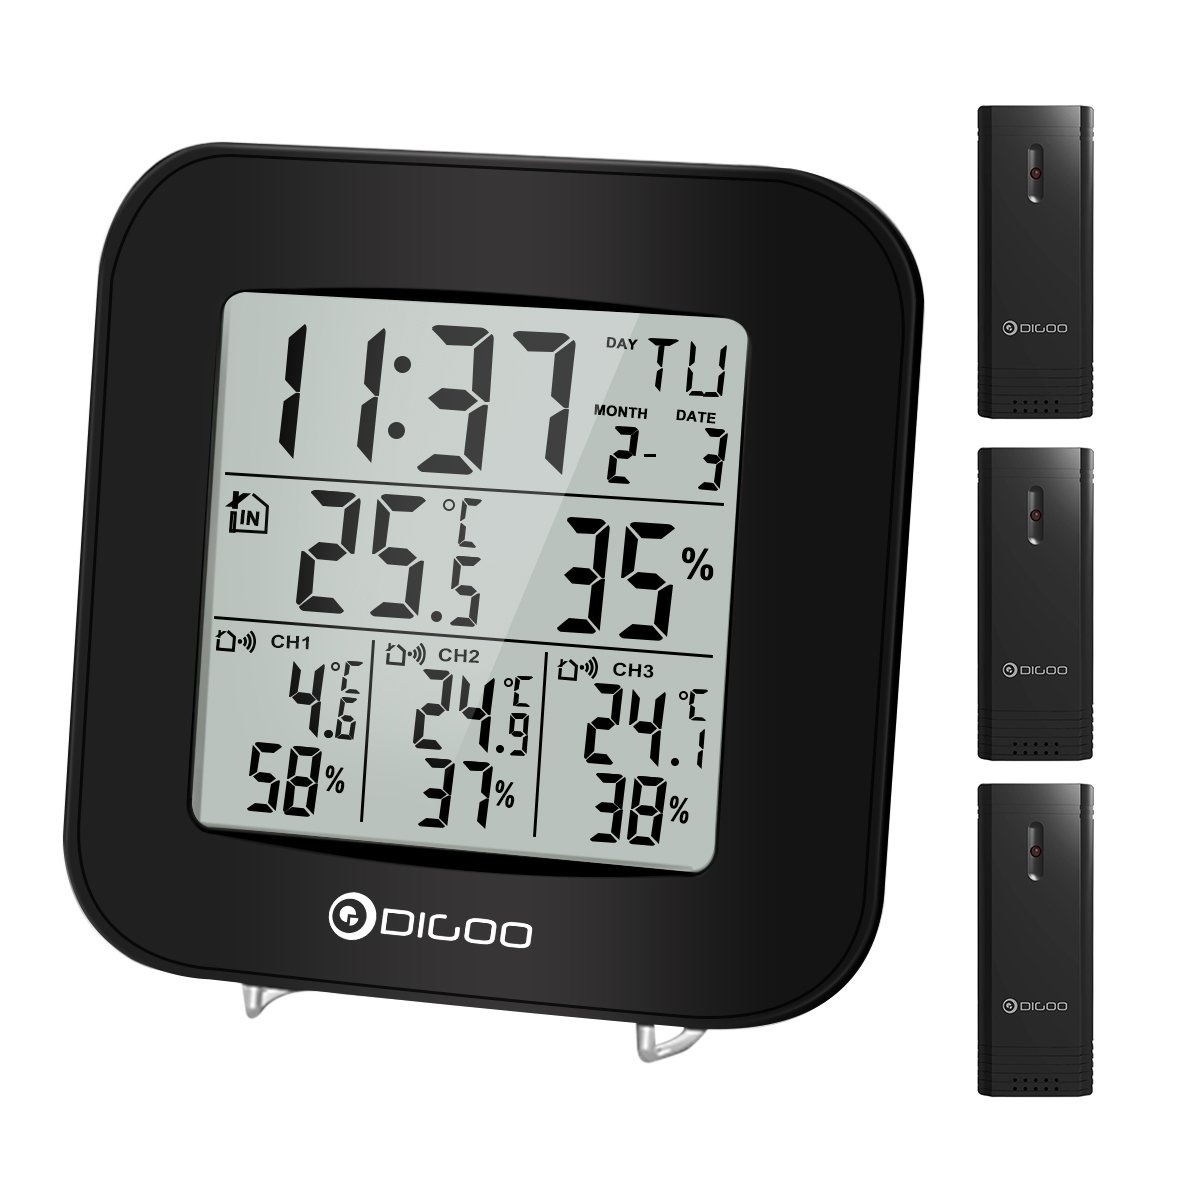 DIGOO 3 Channels Digital In&Outdoor Hygrometer Thermometer Sensor With Alarm Clock, Black